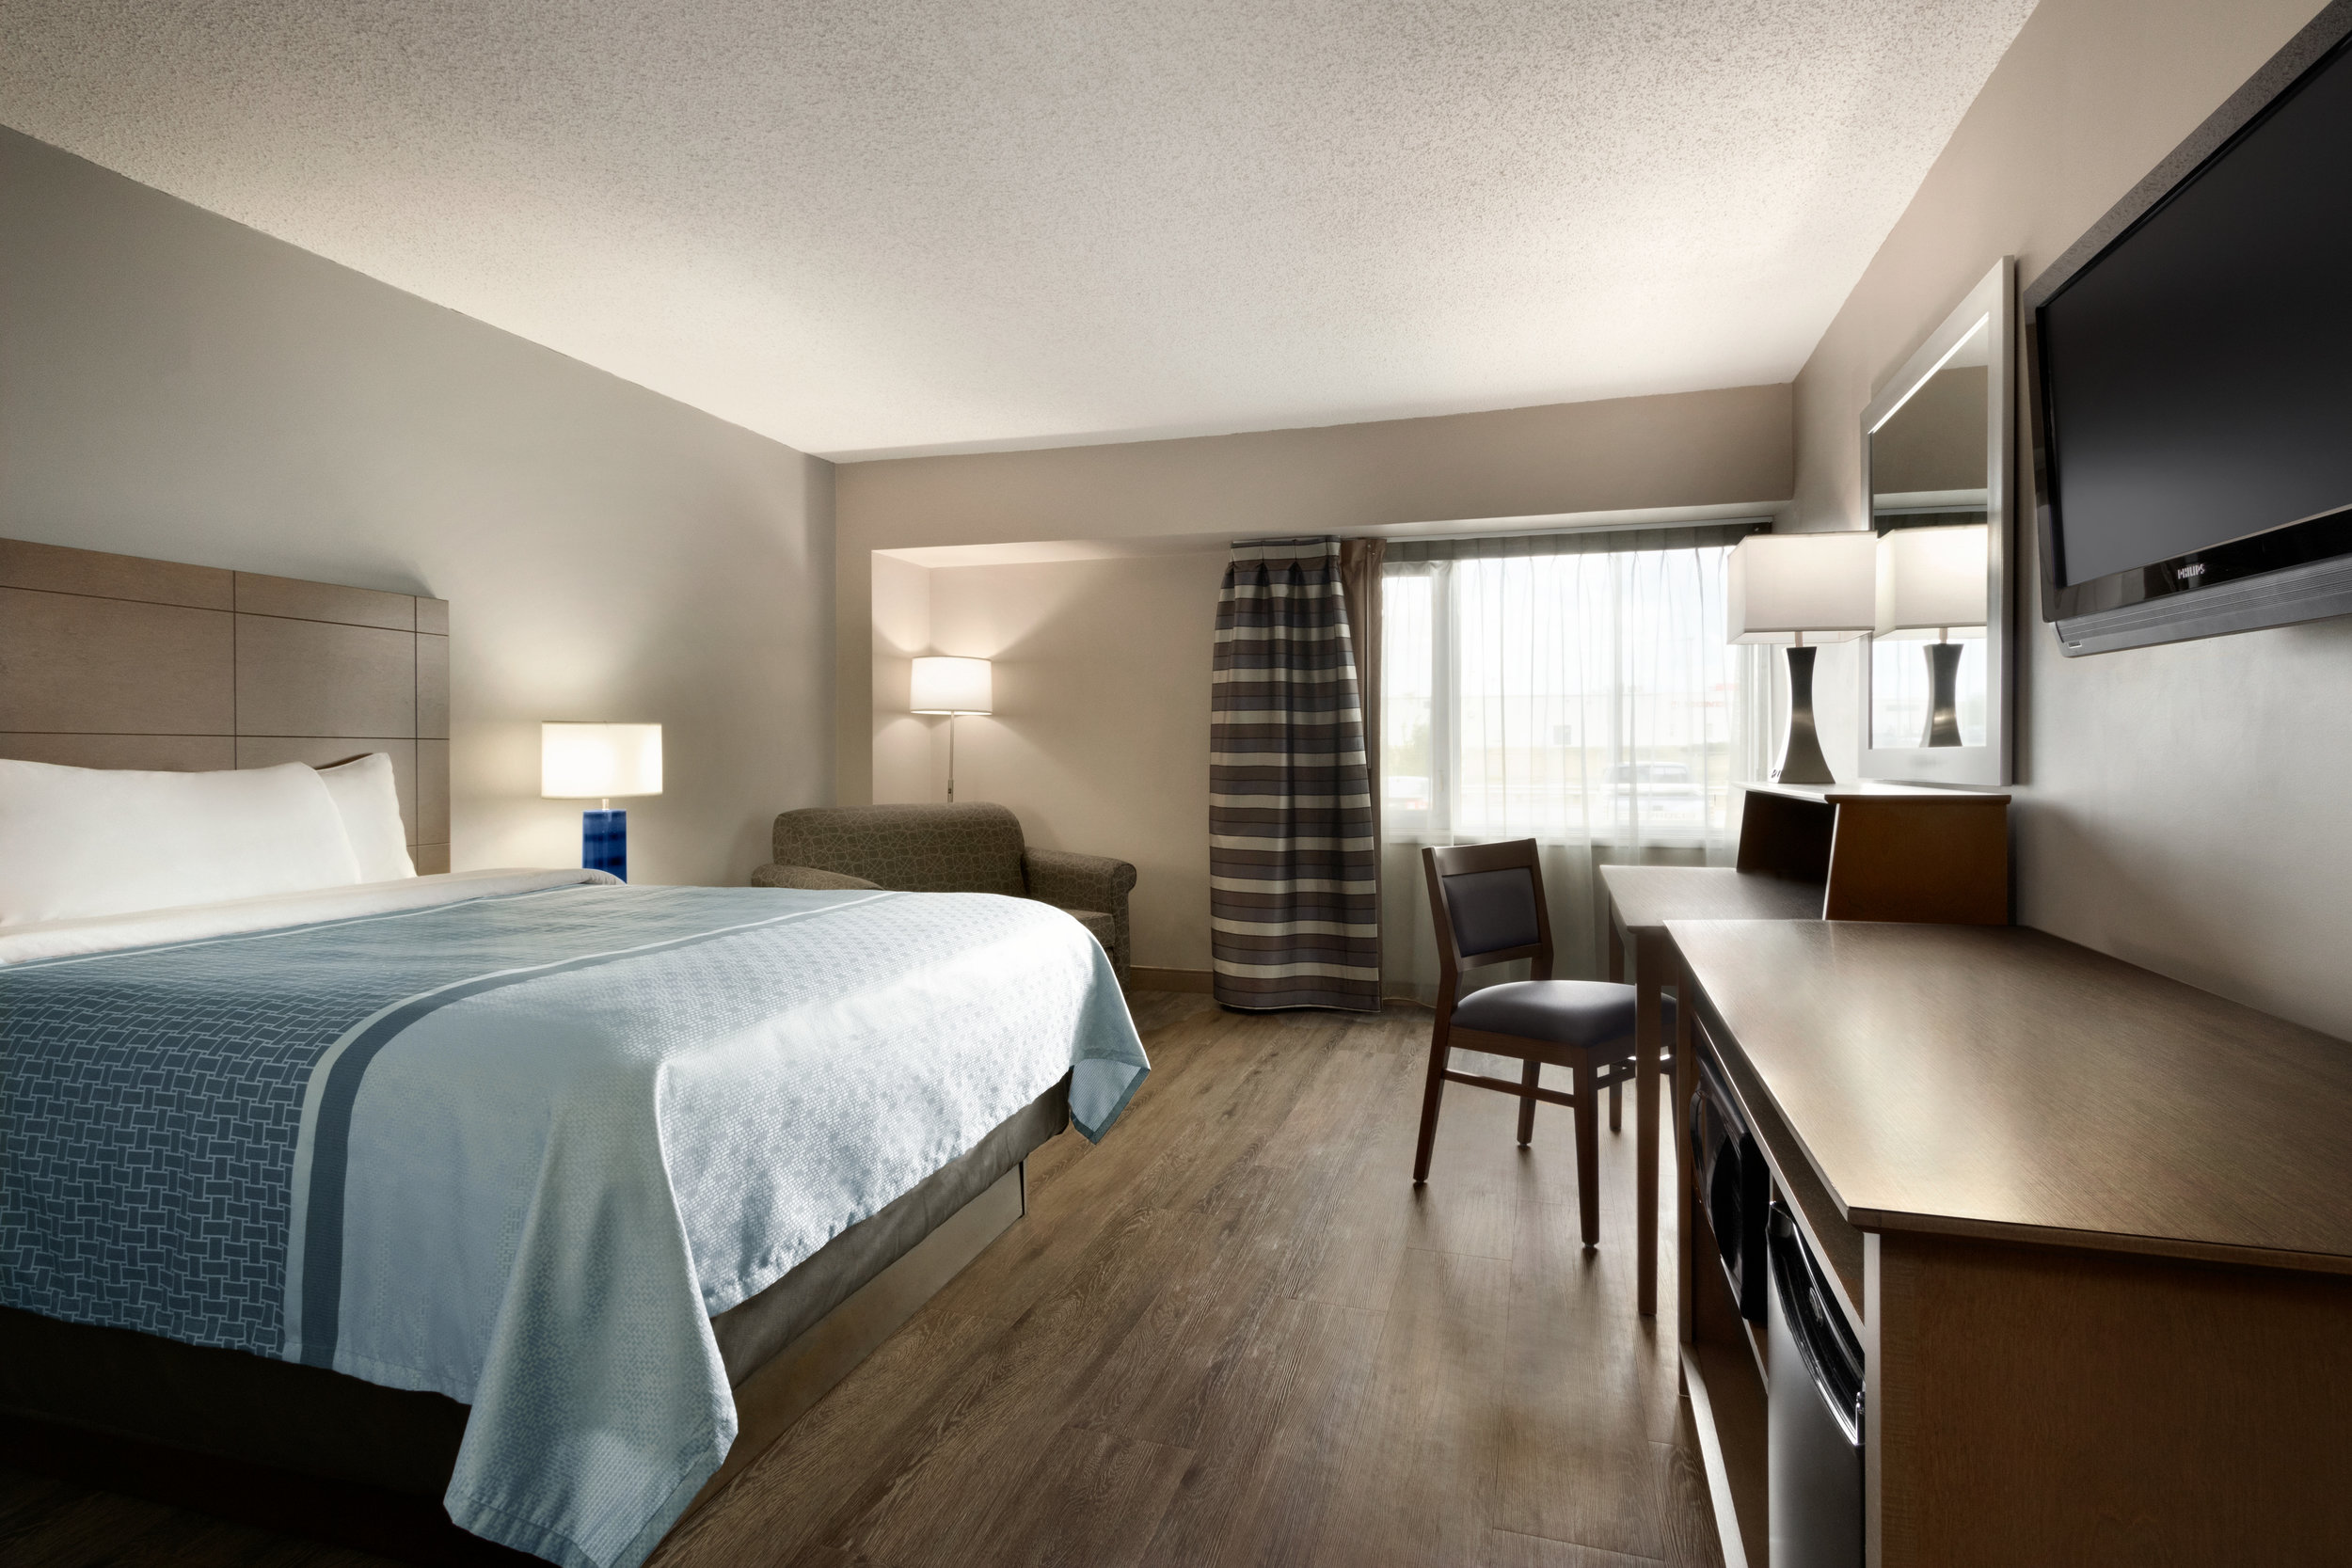 9666_Travelodge-Hotel-Saskatoon-Accessible-Guest-Room.jpg